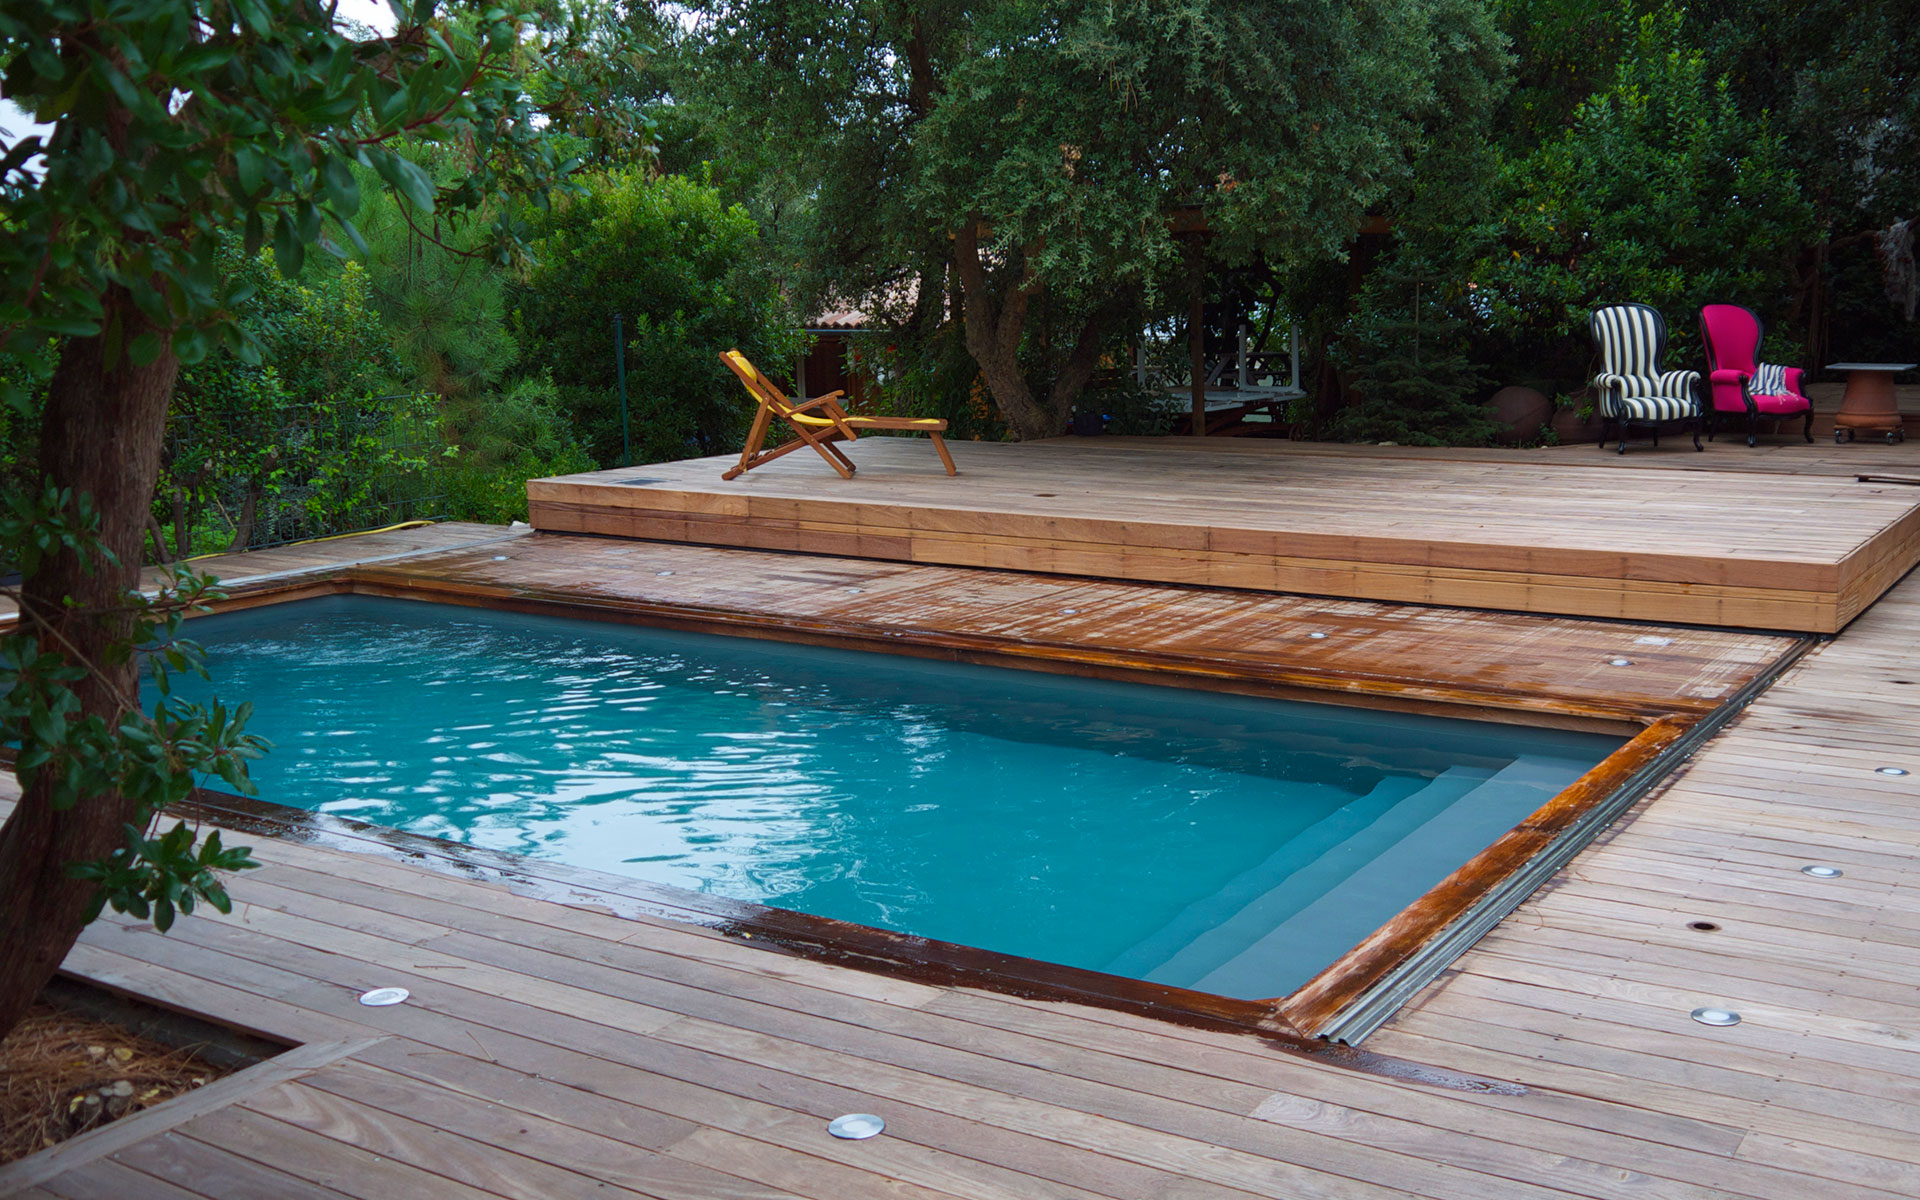 Terrasse mobile pour piscine hidden pool fond mobile for Piscine pour terrasse